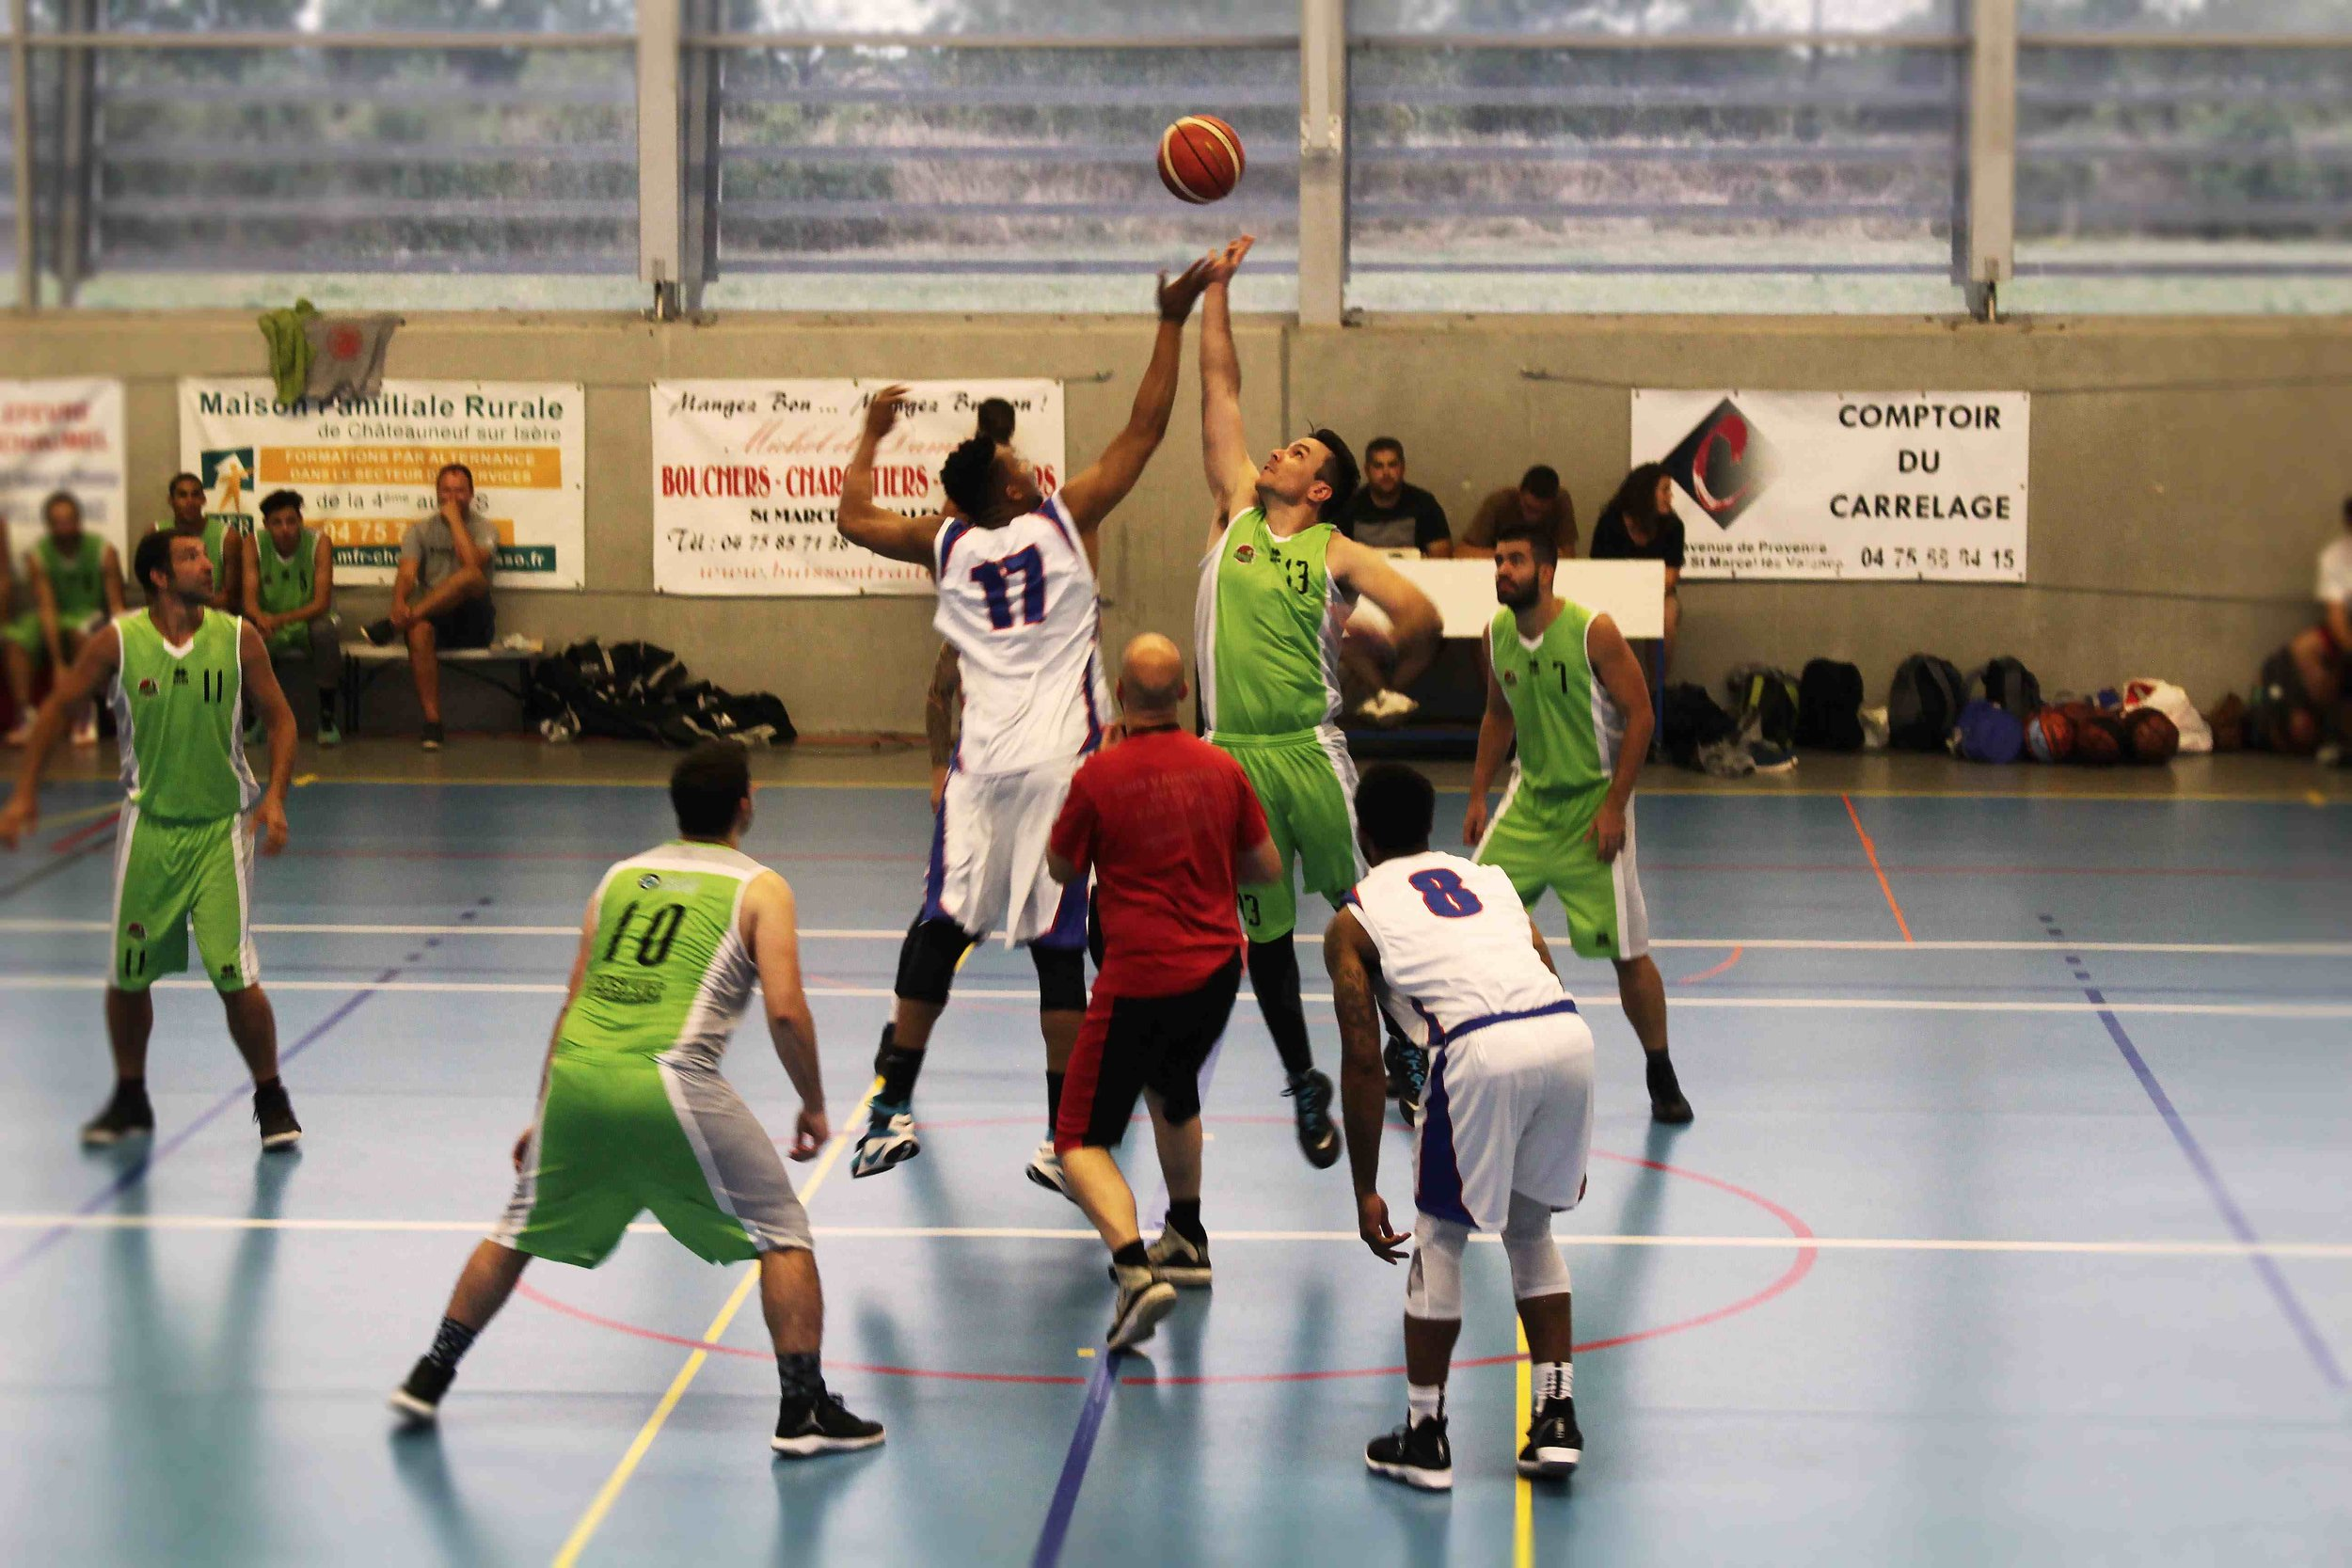 News Release players (in white) playing against a European pro team overseas.